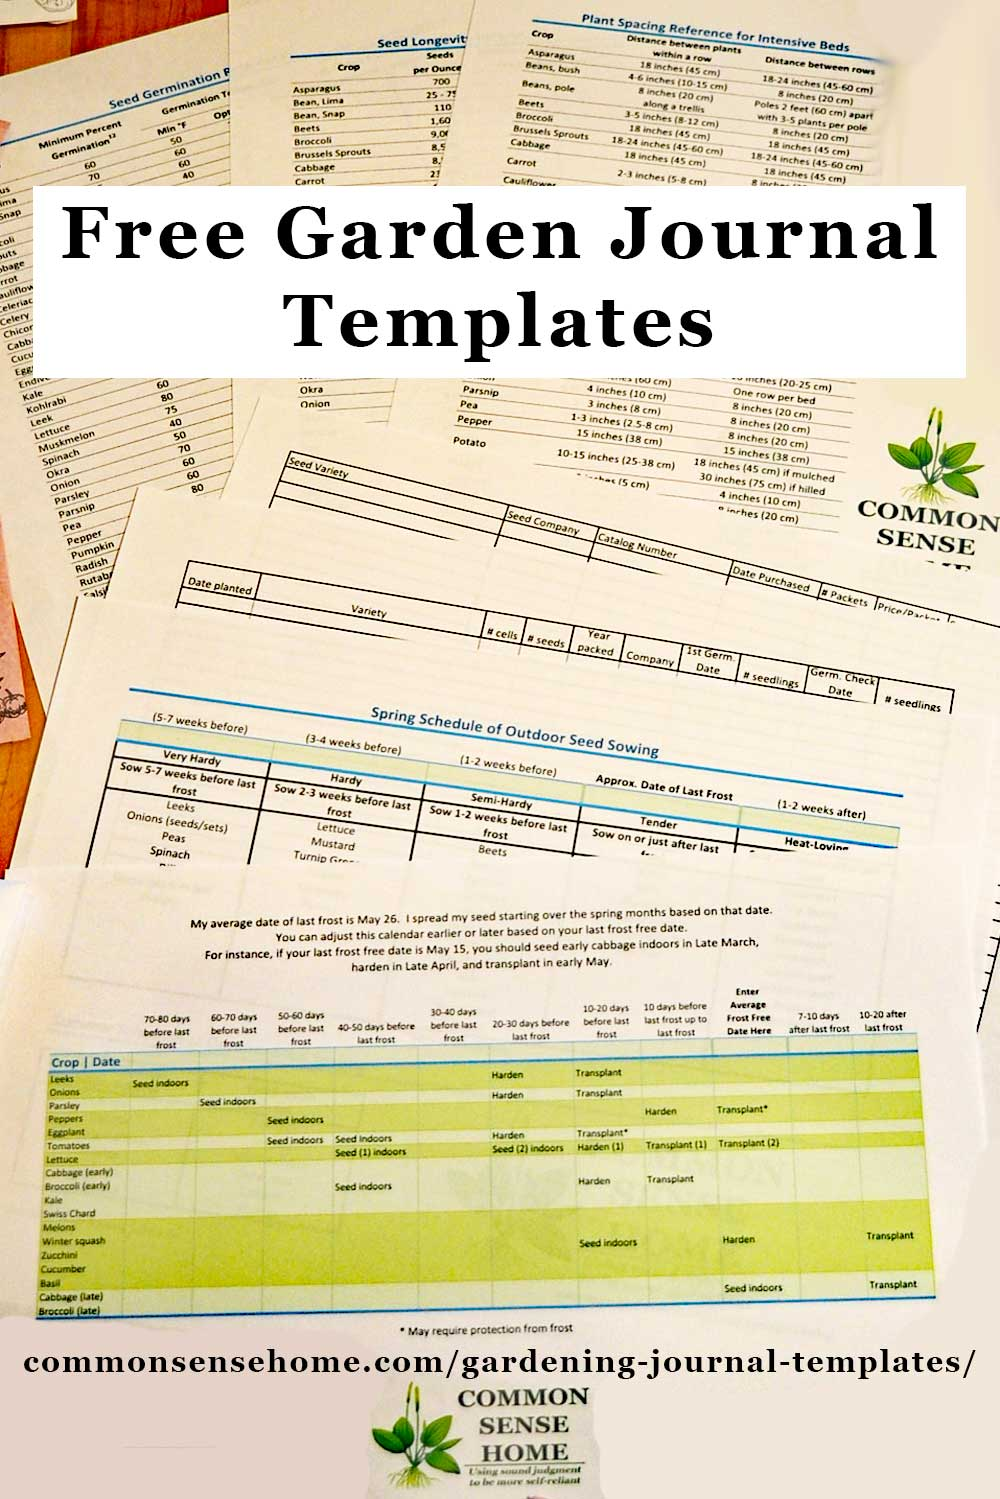 Free Gardening Journal Templates and Other Garden Record